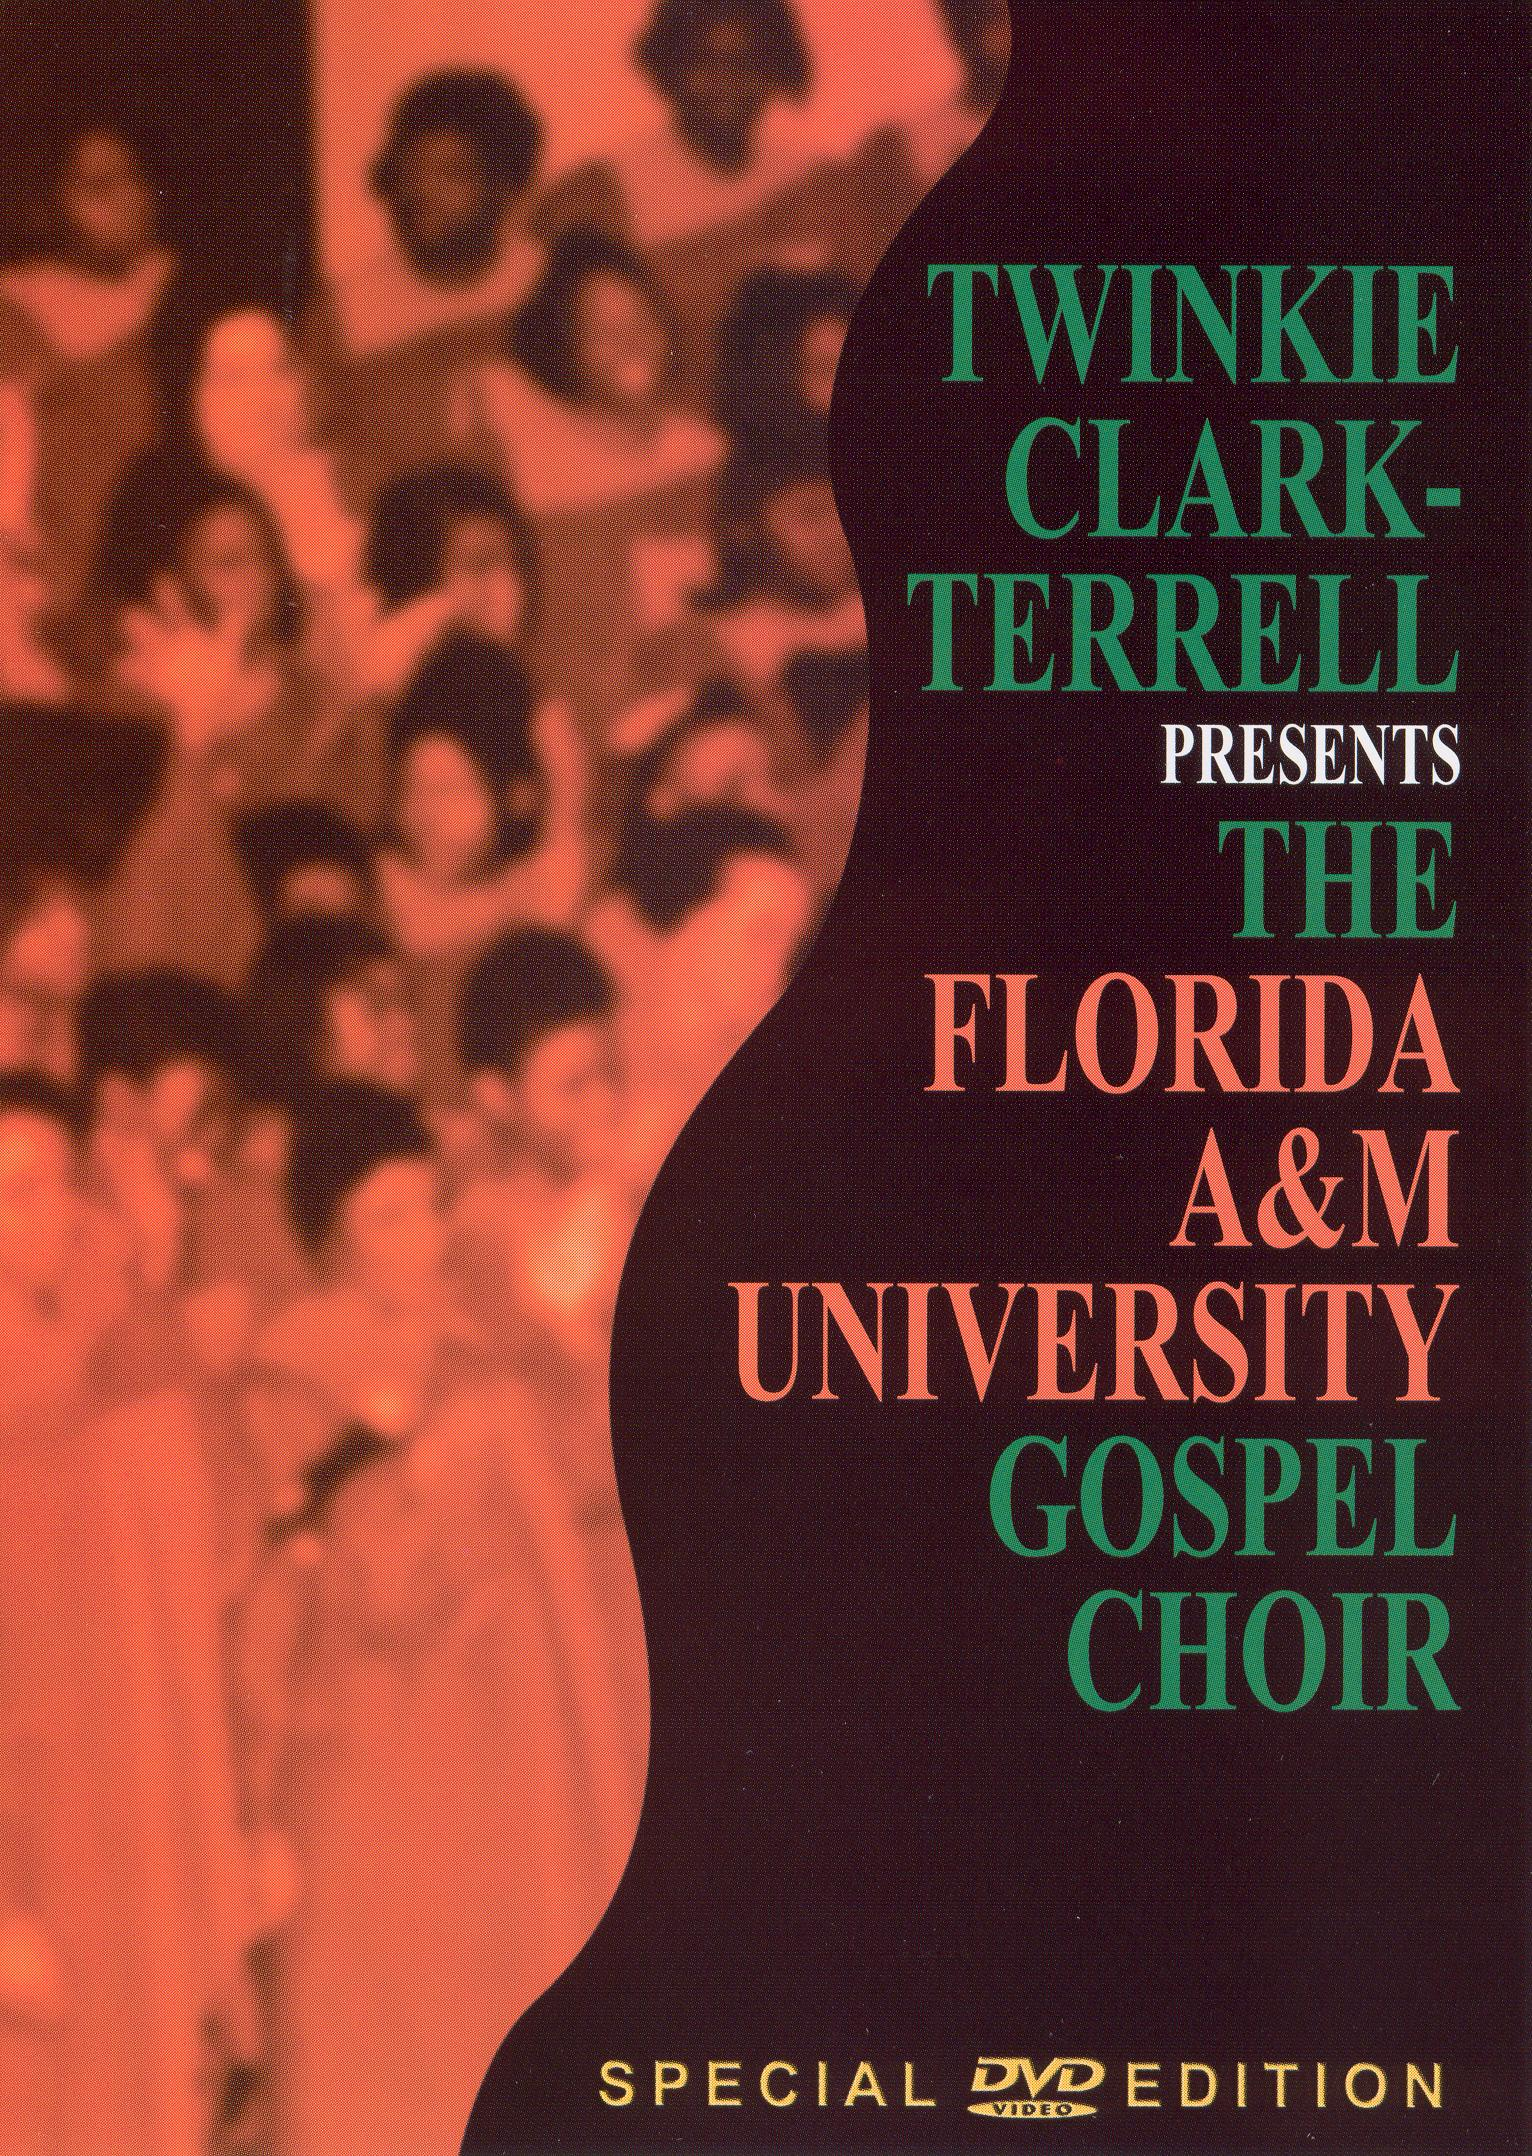 Twinkie Clark-Terrell Presents the Florida A&M University Gospel Choir